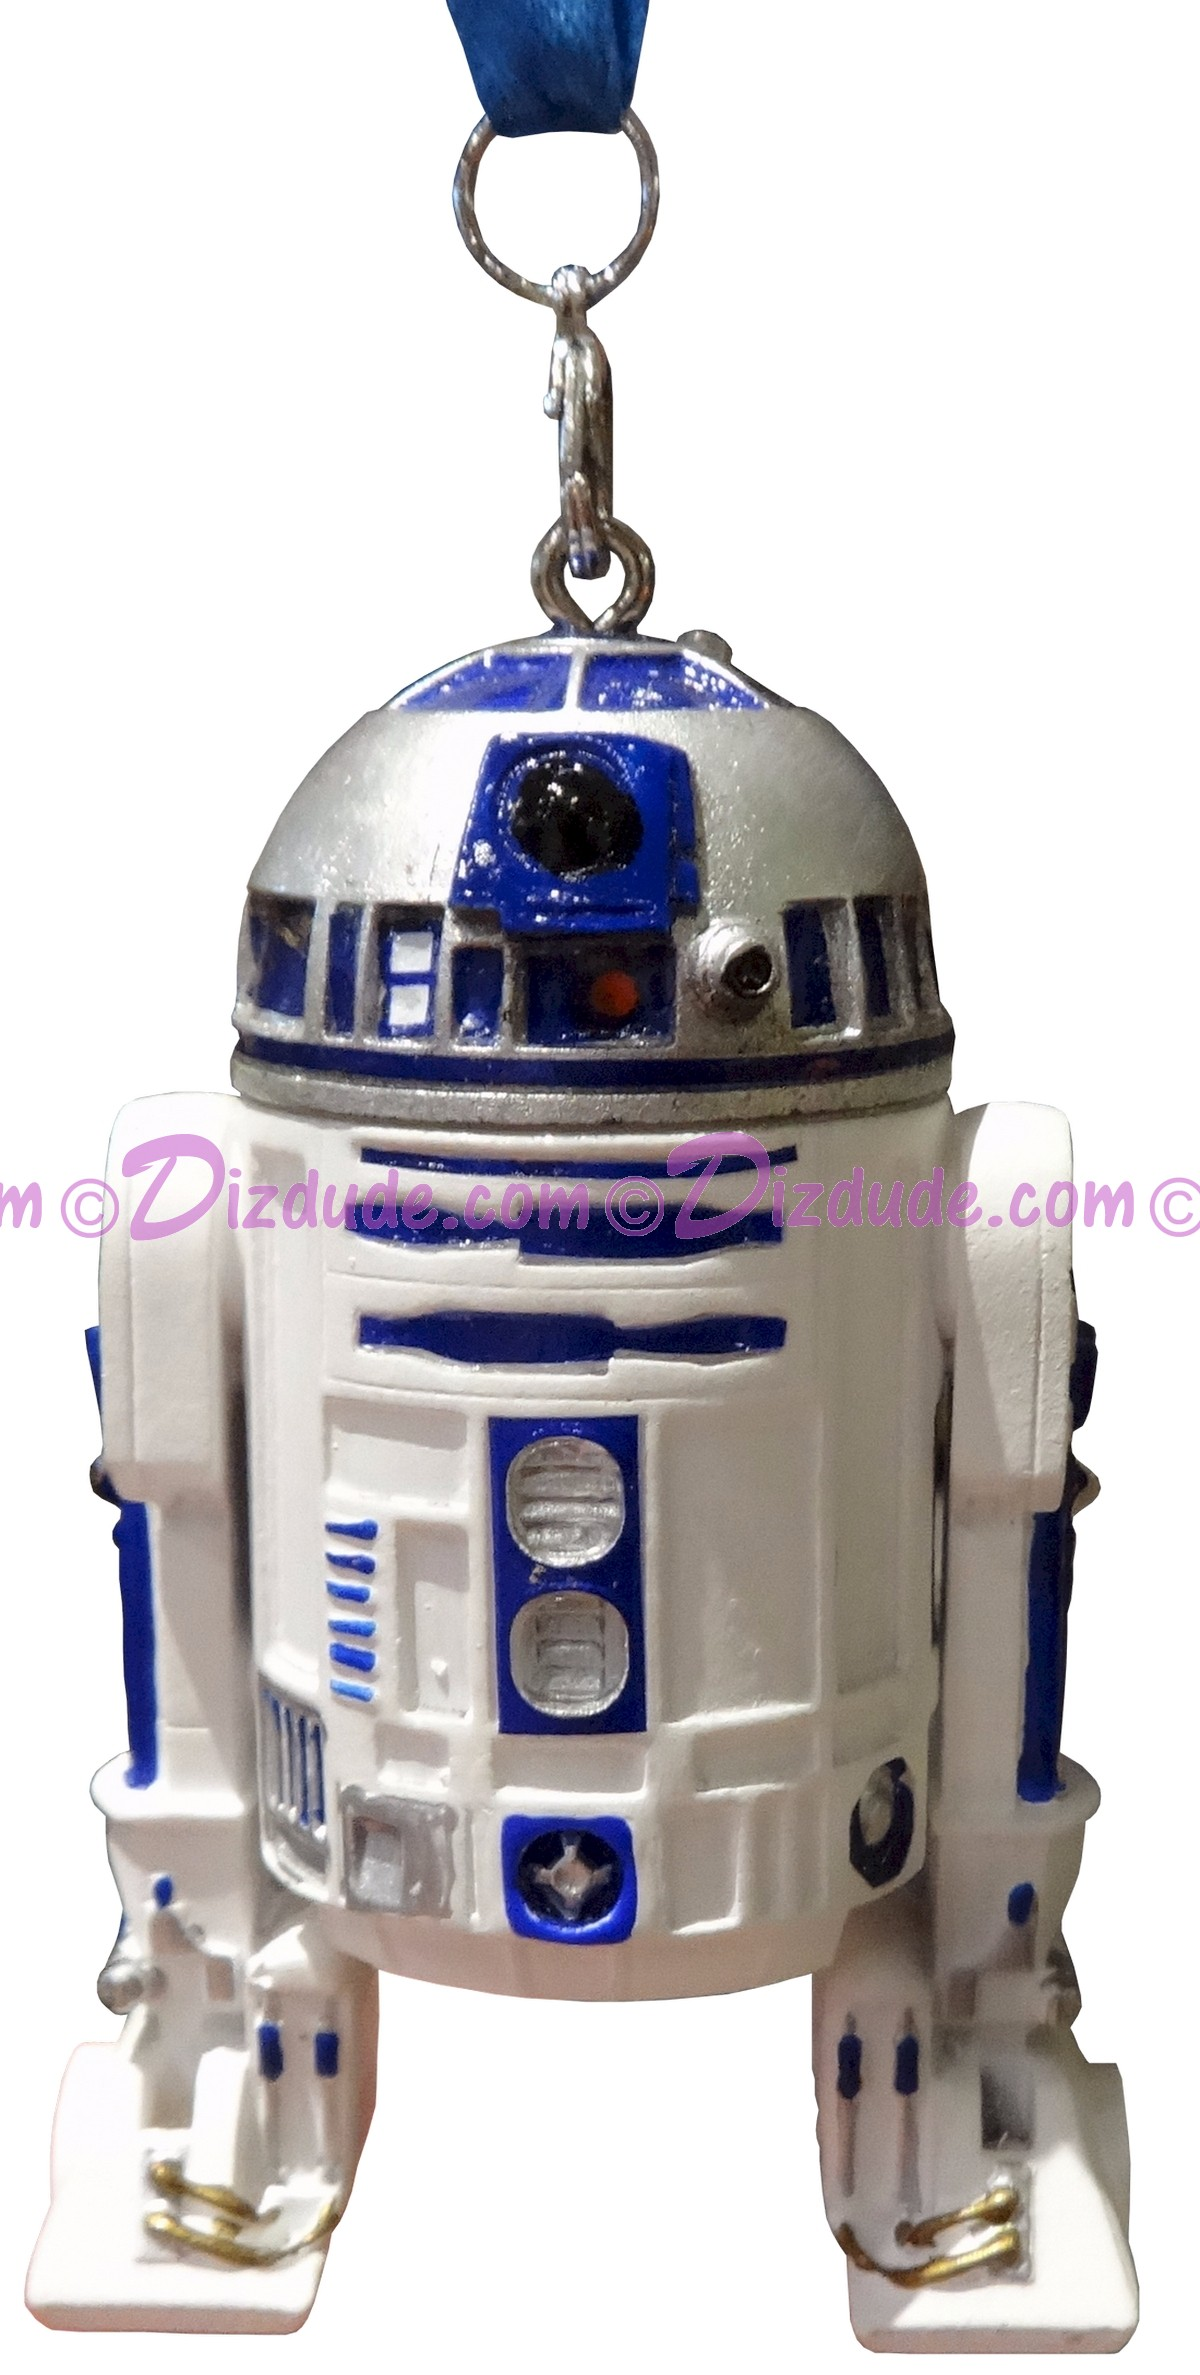 R2-D2 Light Up Christmas Ornament ~ Disney Star Wars © Dizdude.com